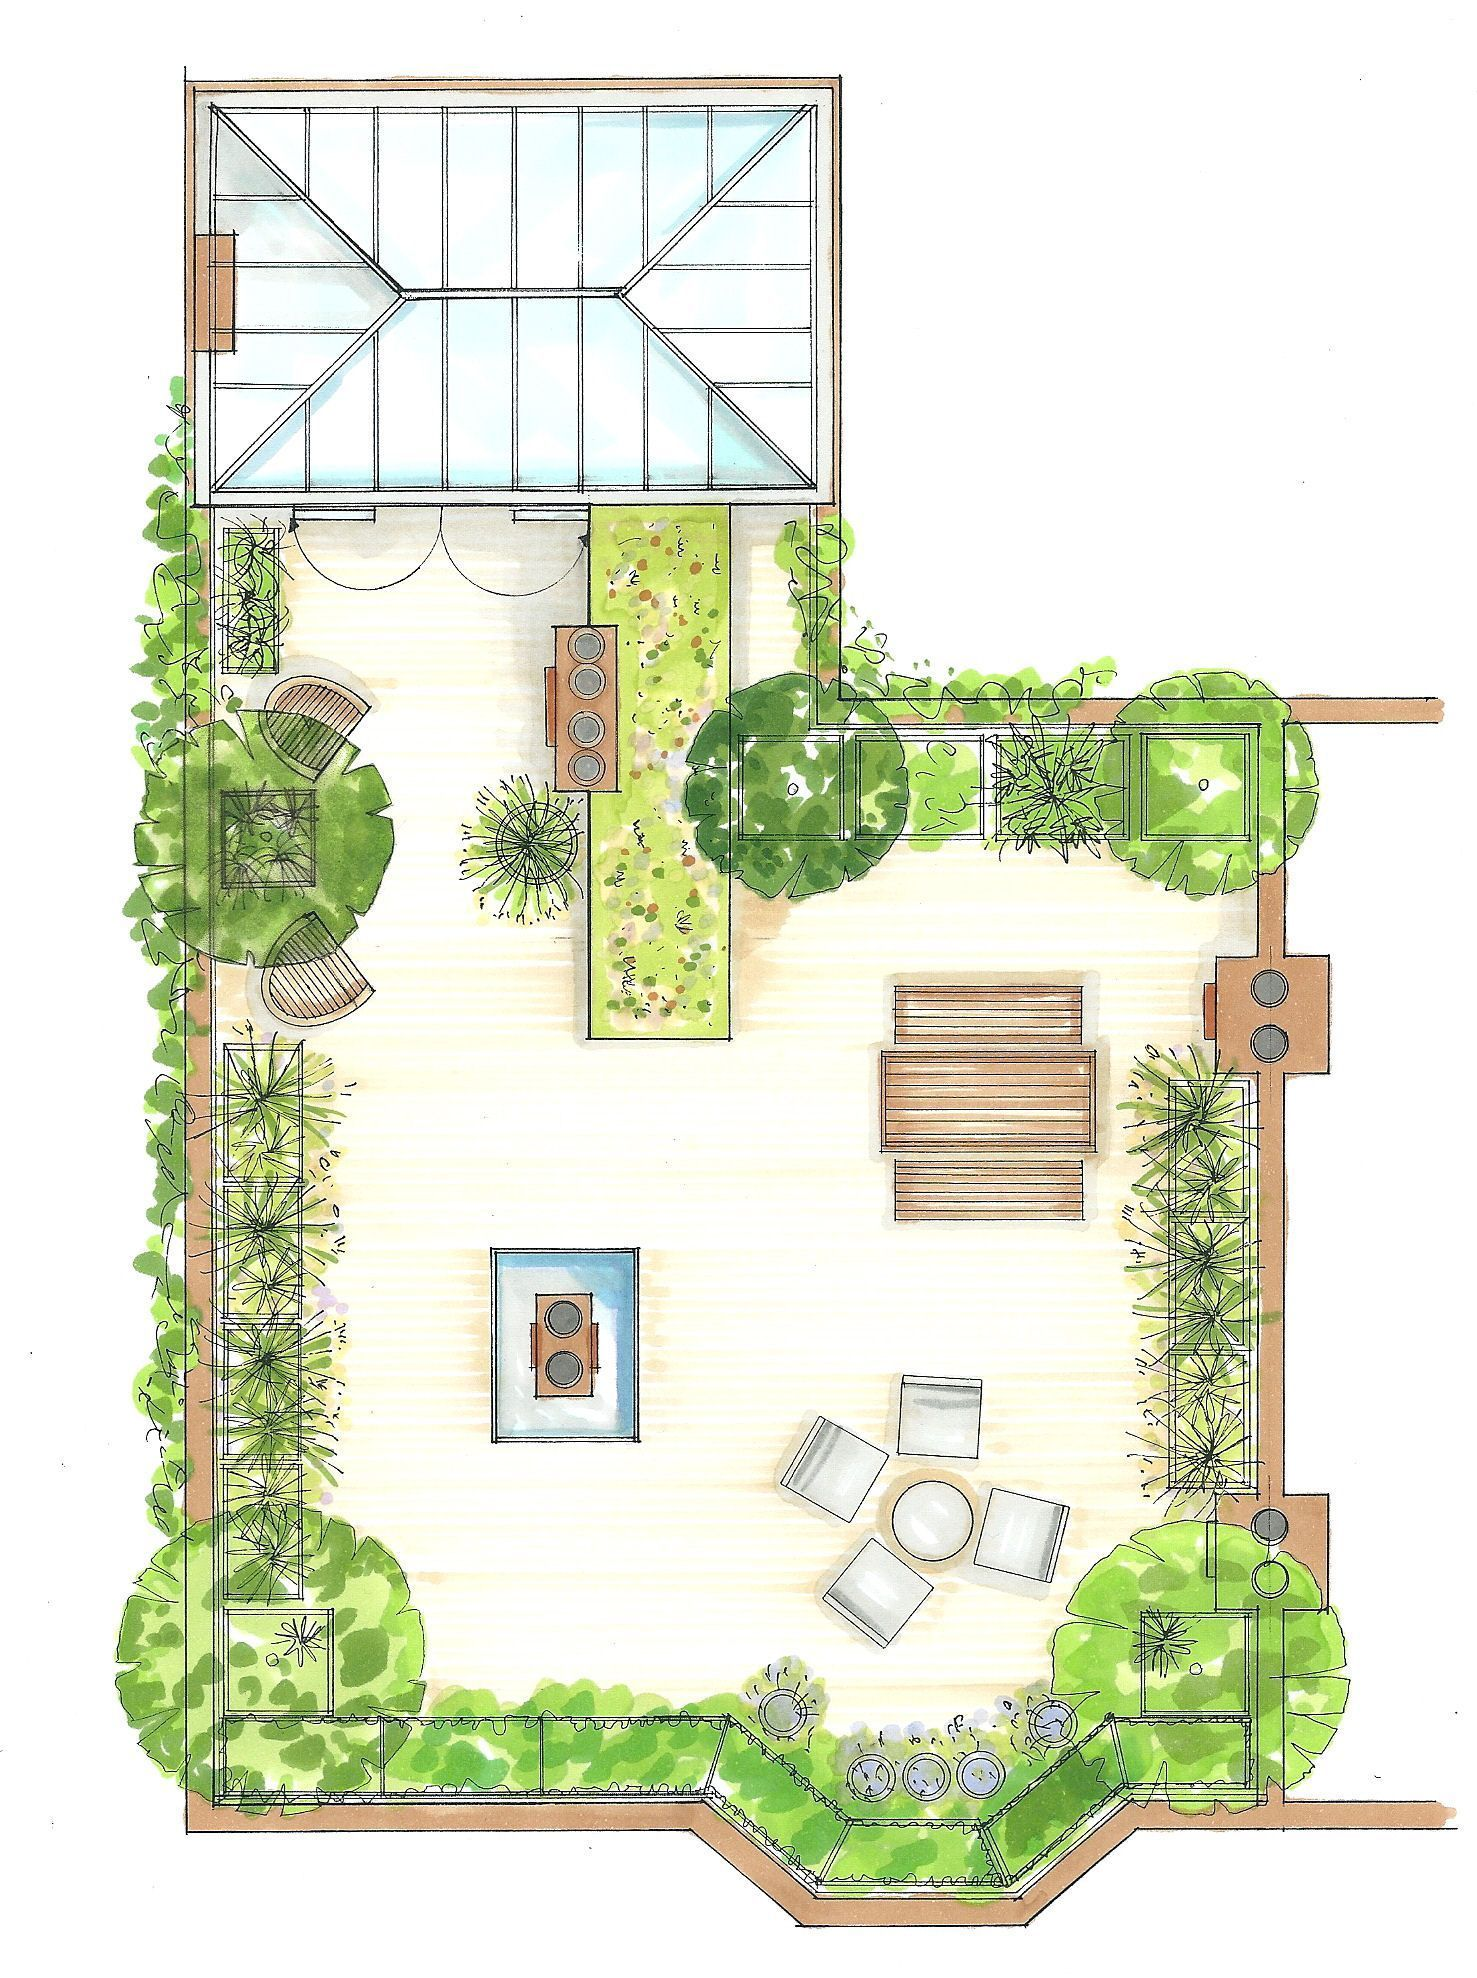 Rooftop Garden Design Layout A Slope With Stone Steps With A Sweeping Stone Staircase You Can In 2020 Roof Garden Design Roof Terrace Design Garden Design Layout